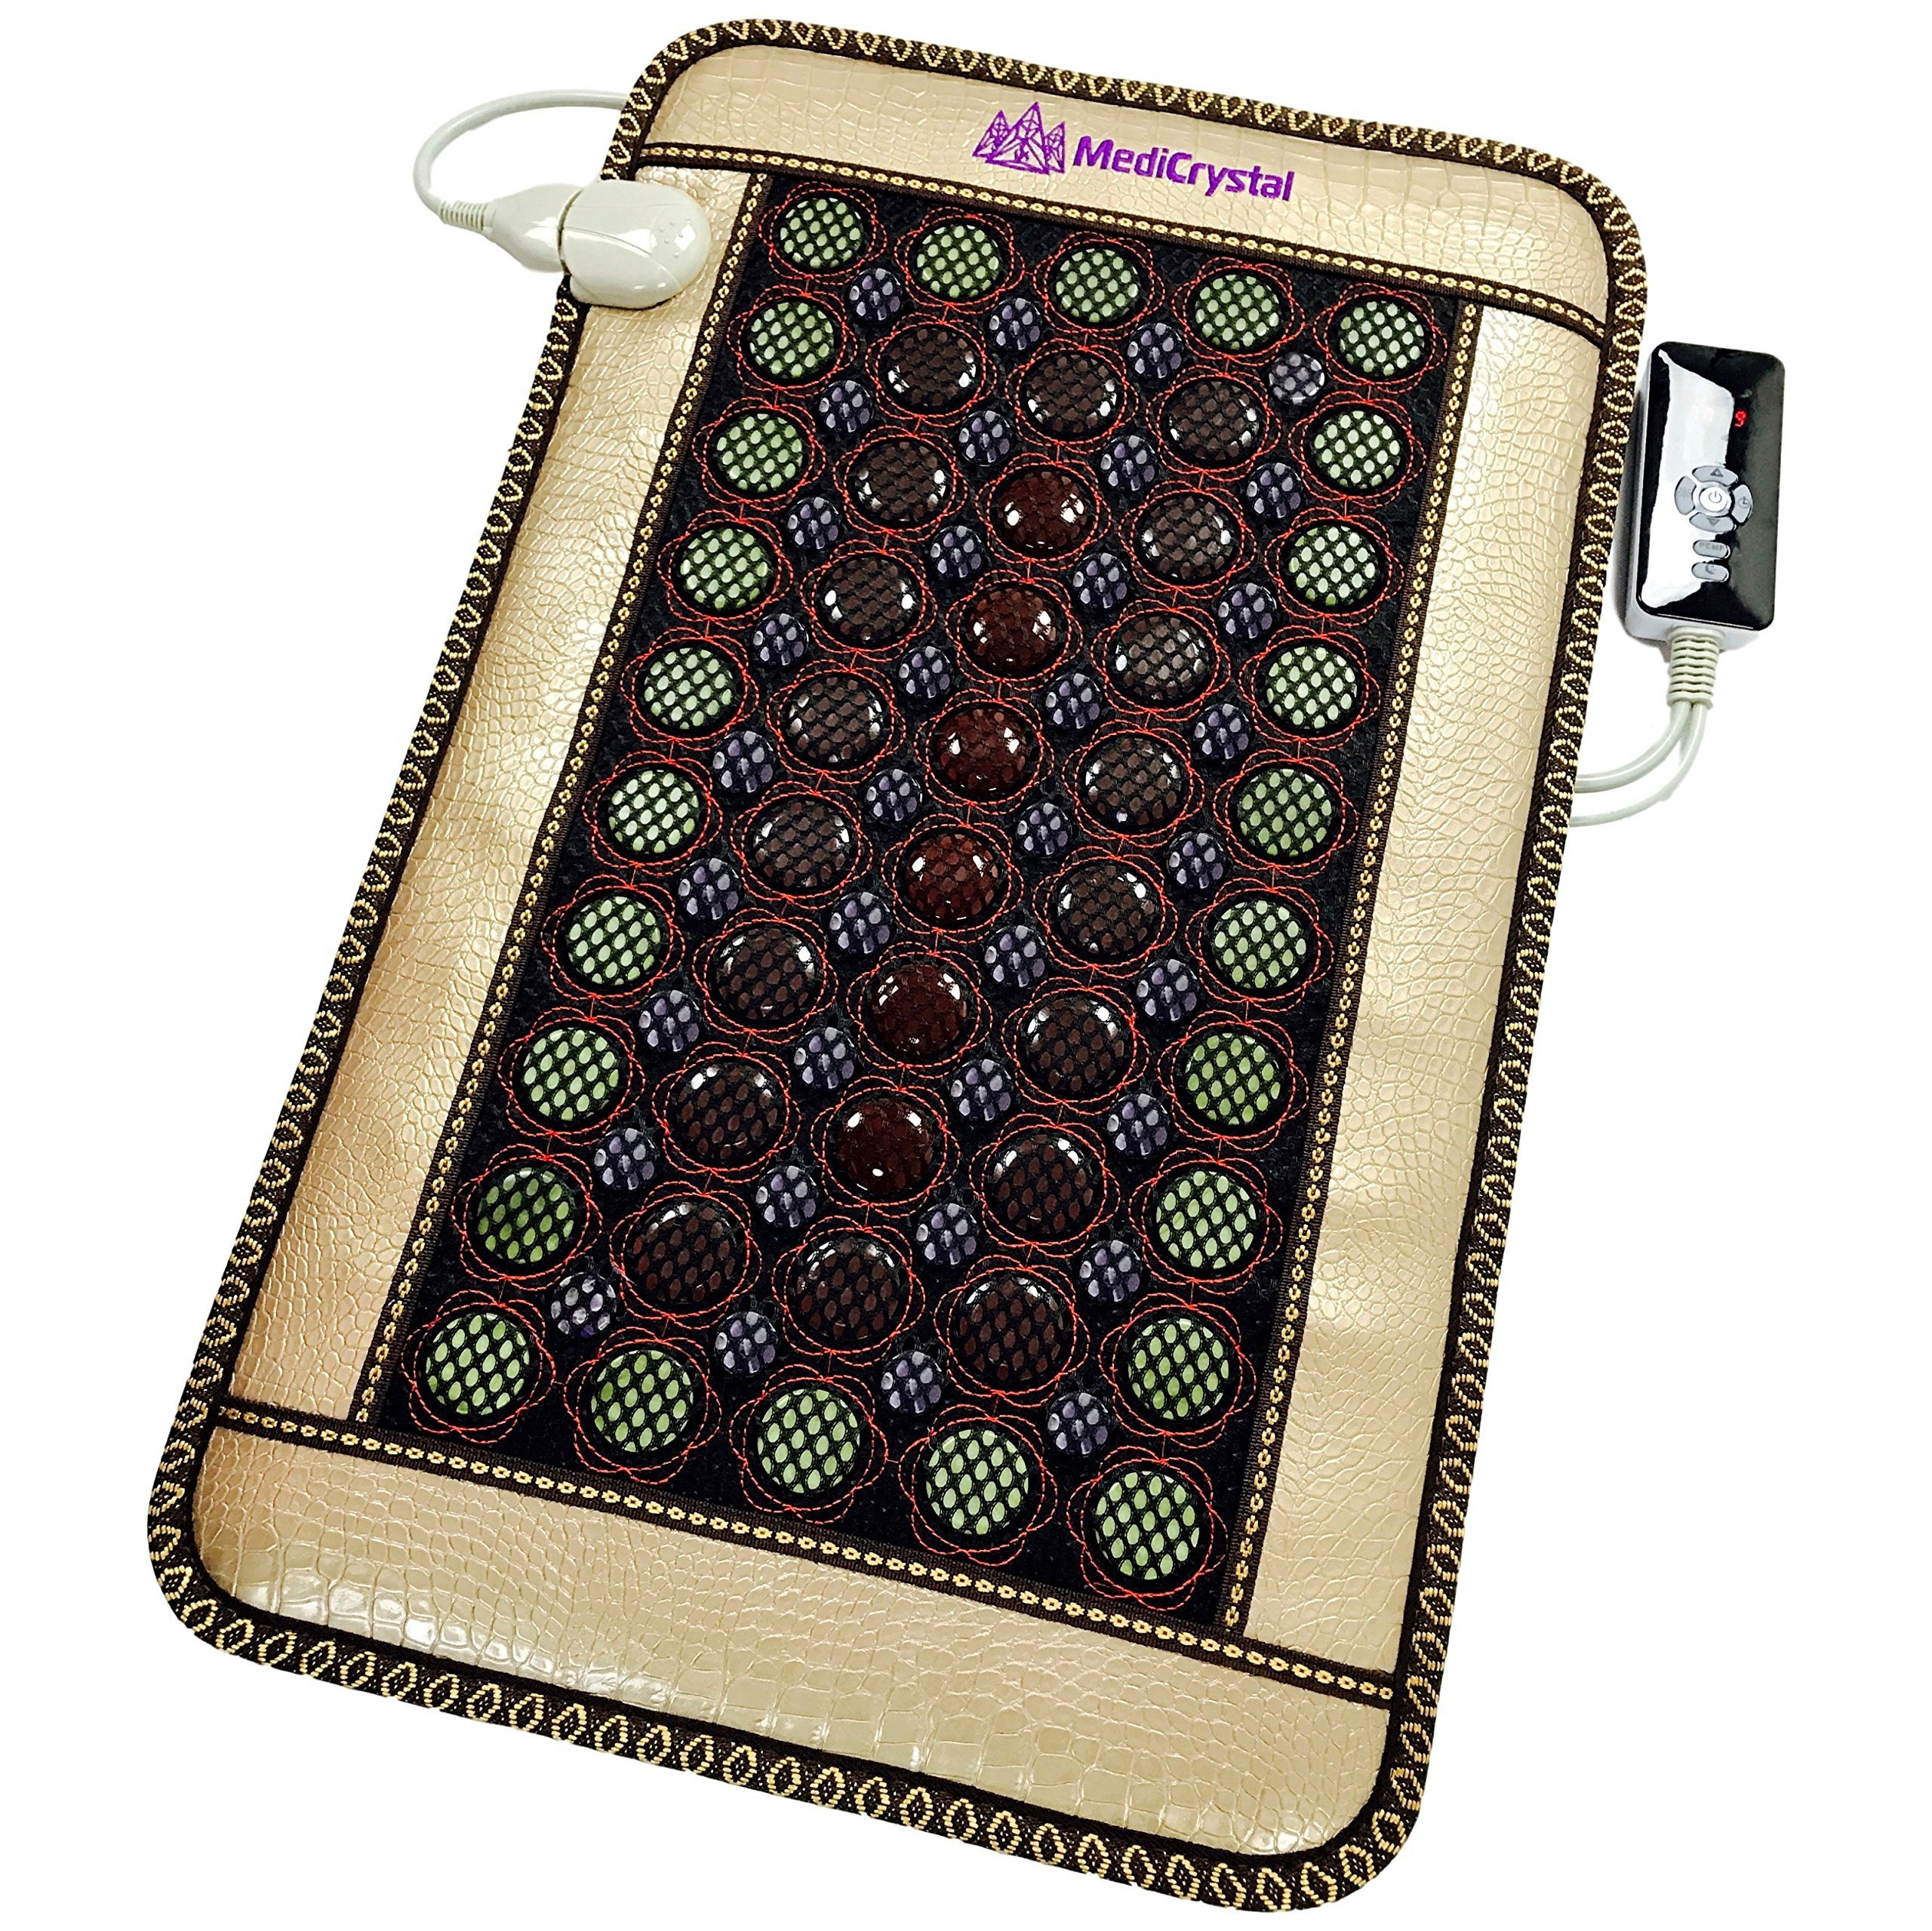 4 Gems FIR Bio Magnetic Mat - Natural Hot Stones - Amethyst Jade Tourmaline Agate - - Far InfraRed Heating Pad - 10Hz PEMF - Negative Ion - FDA Registered Manufacturer (Mini 32''L x 20''W) by MediCrystal (Image #1)